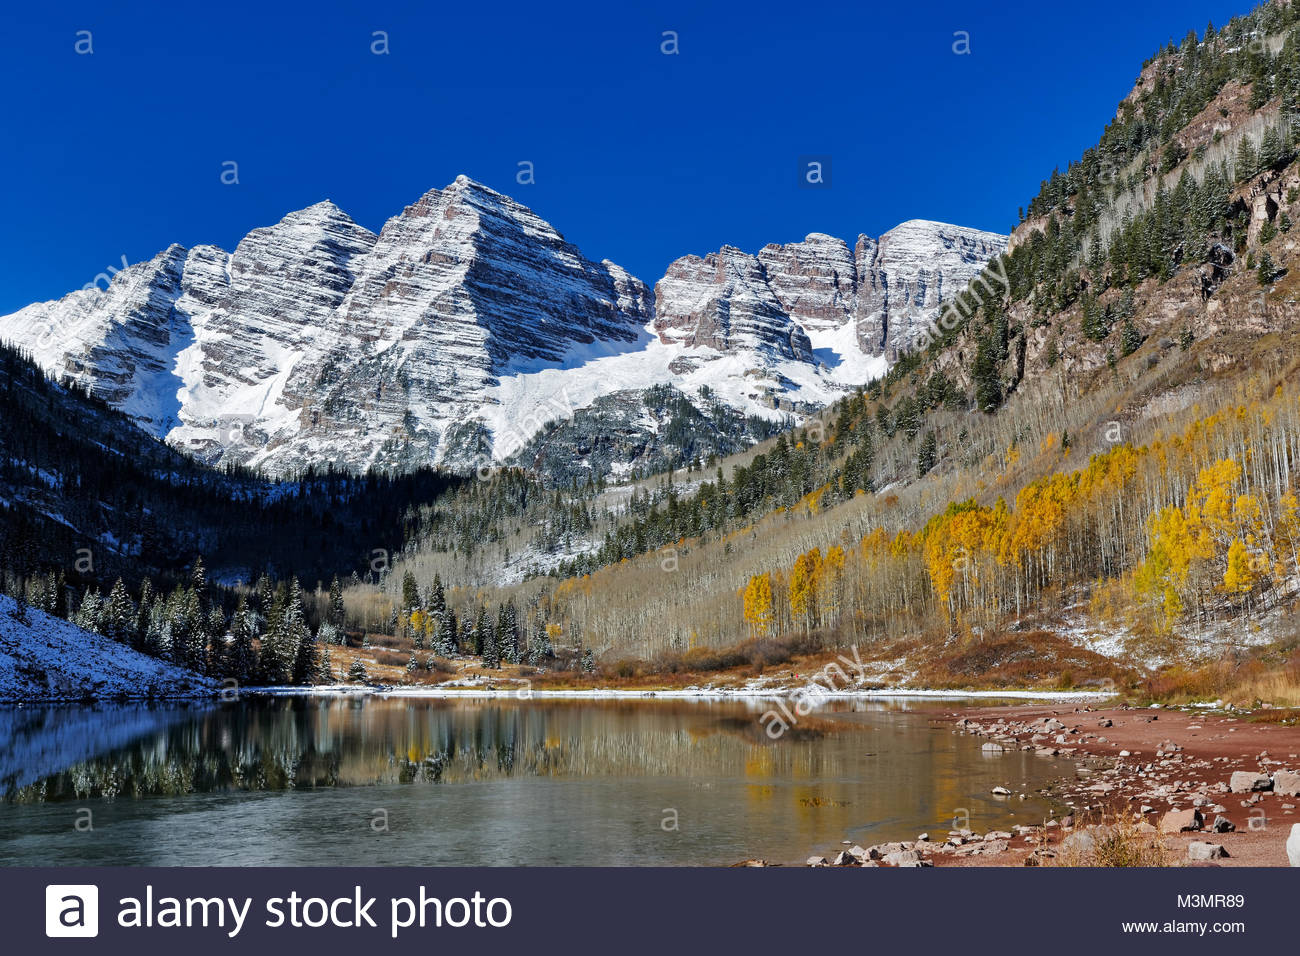 Maroon Bells in Aspen Colorado in late fall - Stock Image